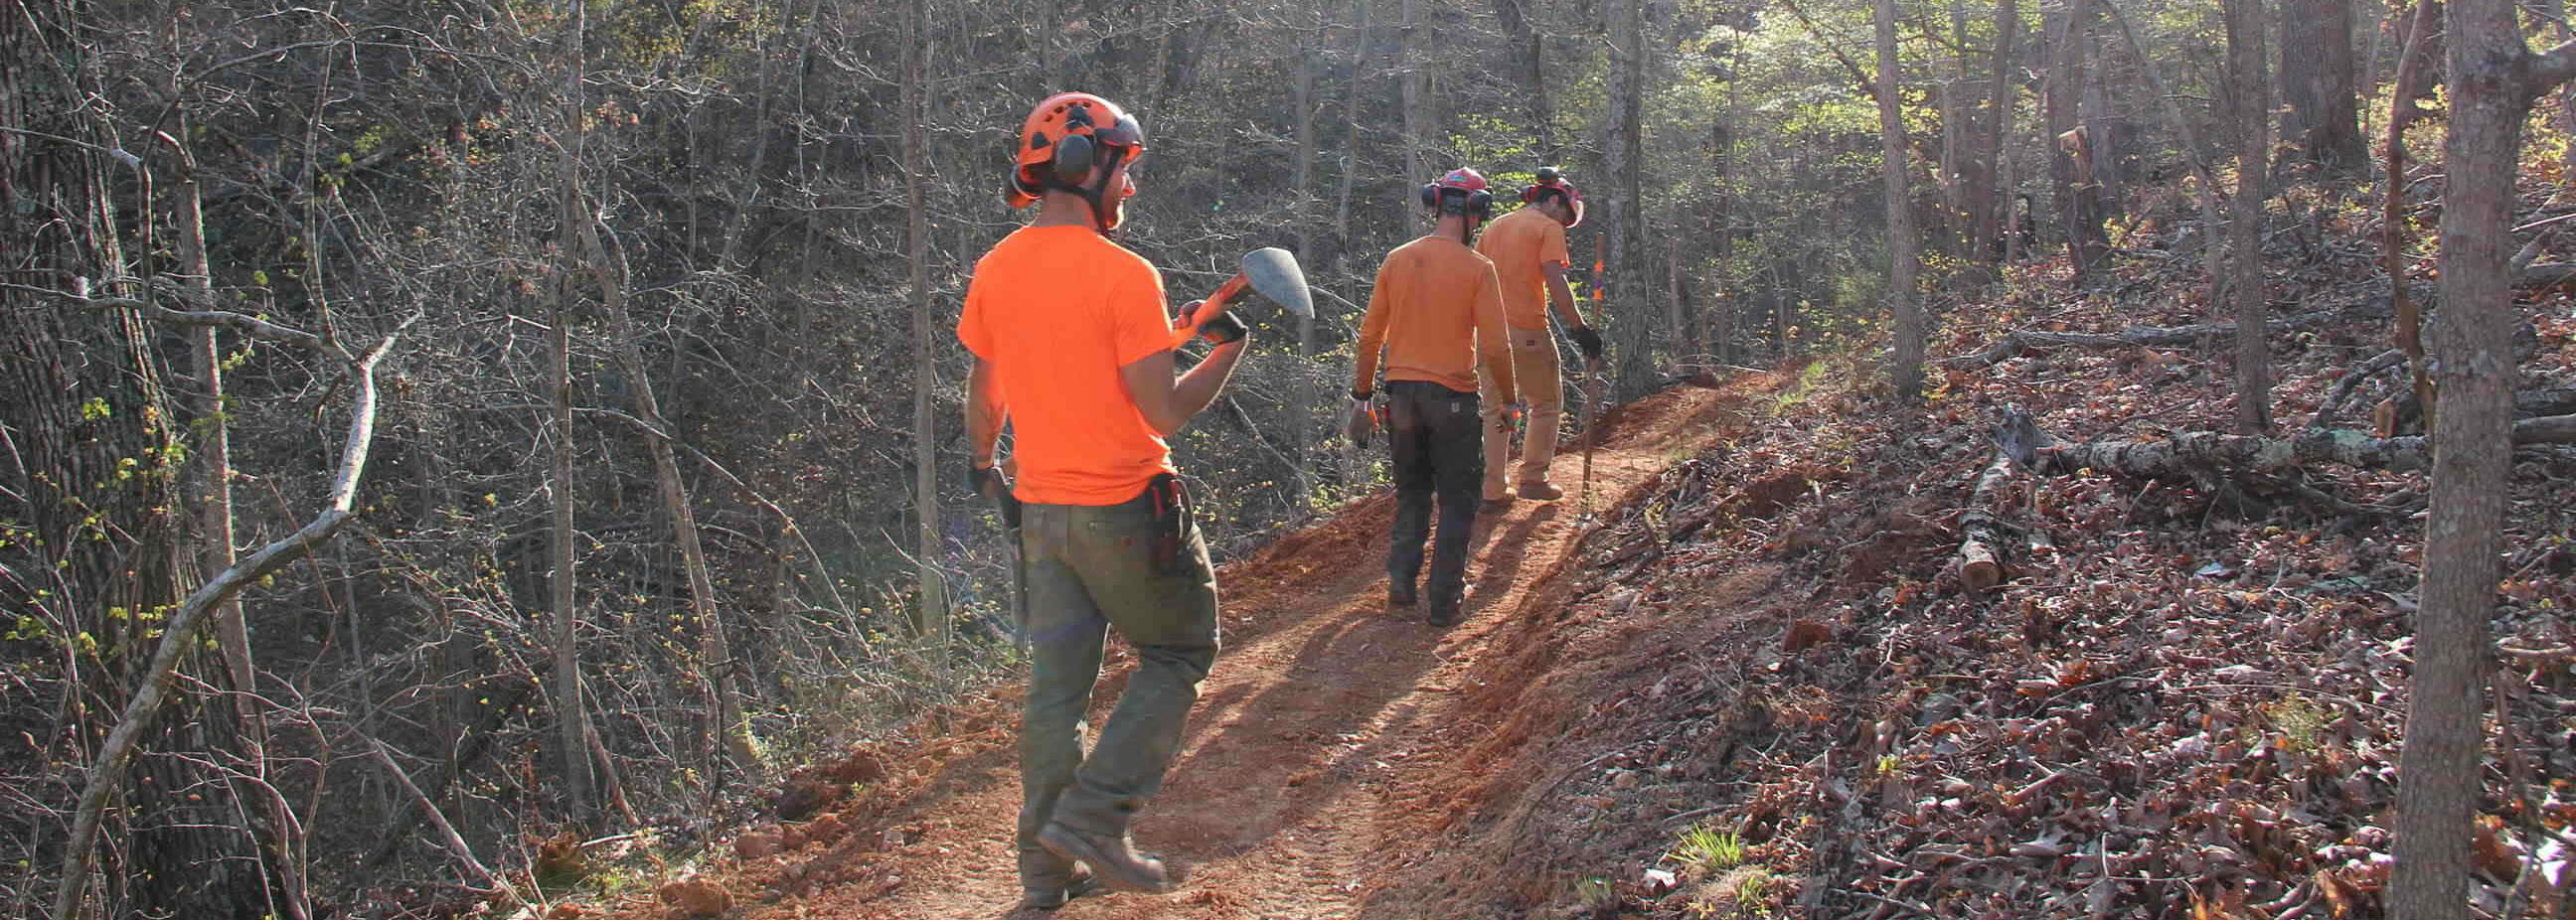 Trail building, woods, trail builders, shovels, helmets